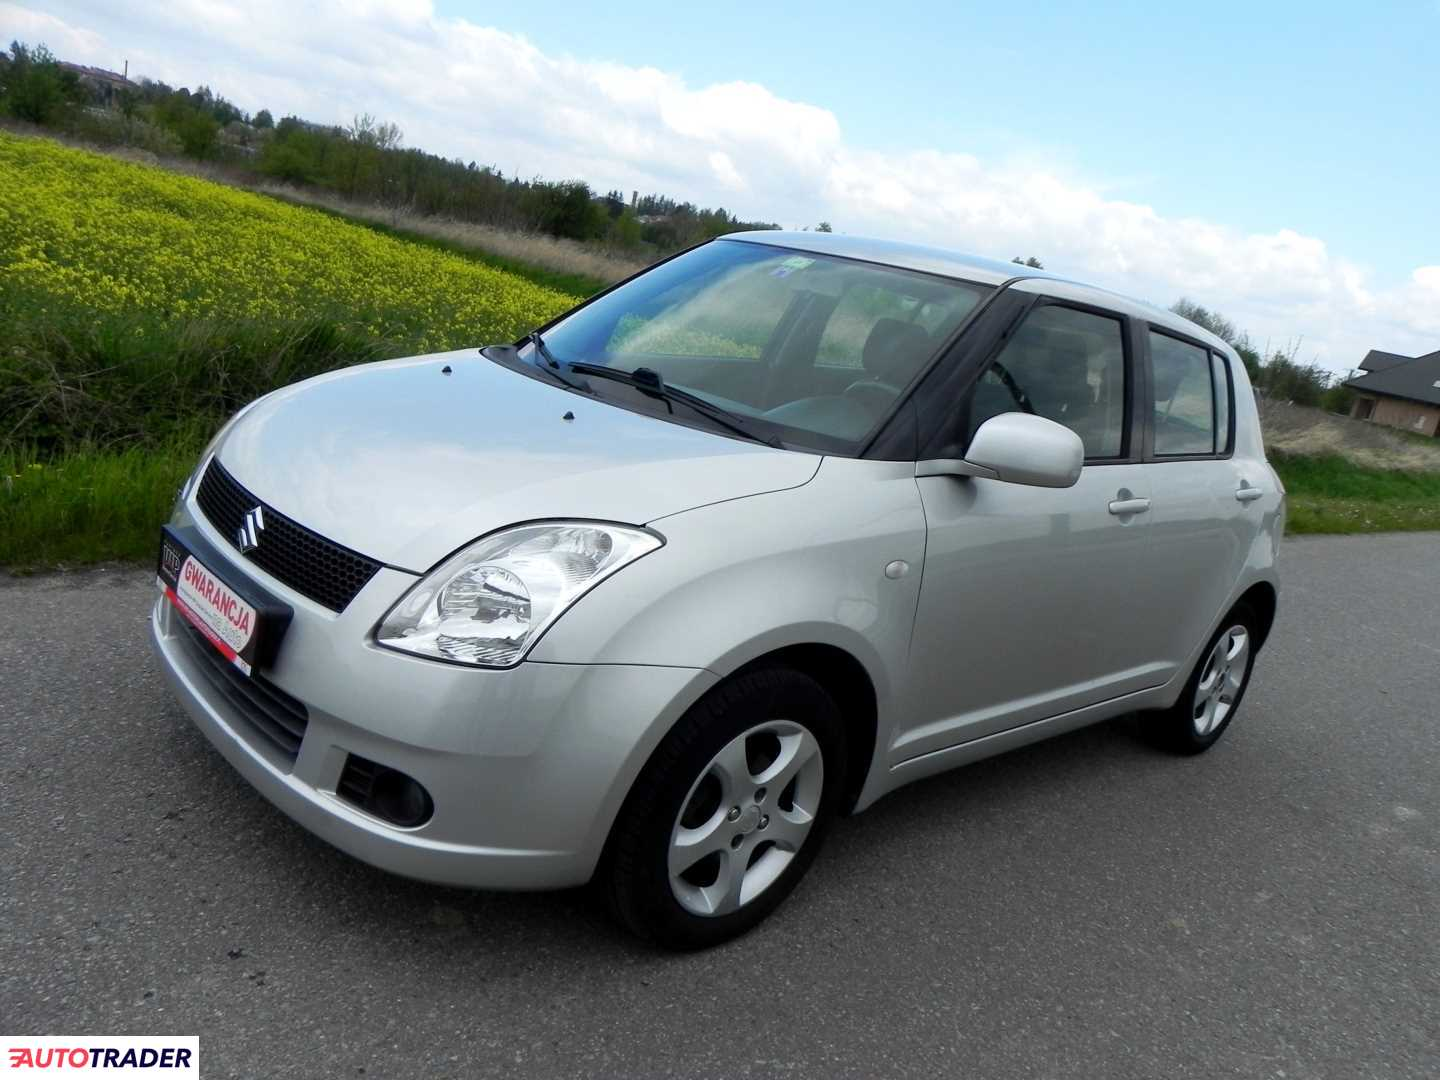 Suzuki Swift 2006 1.3